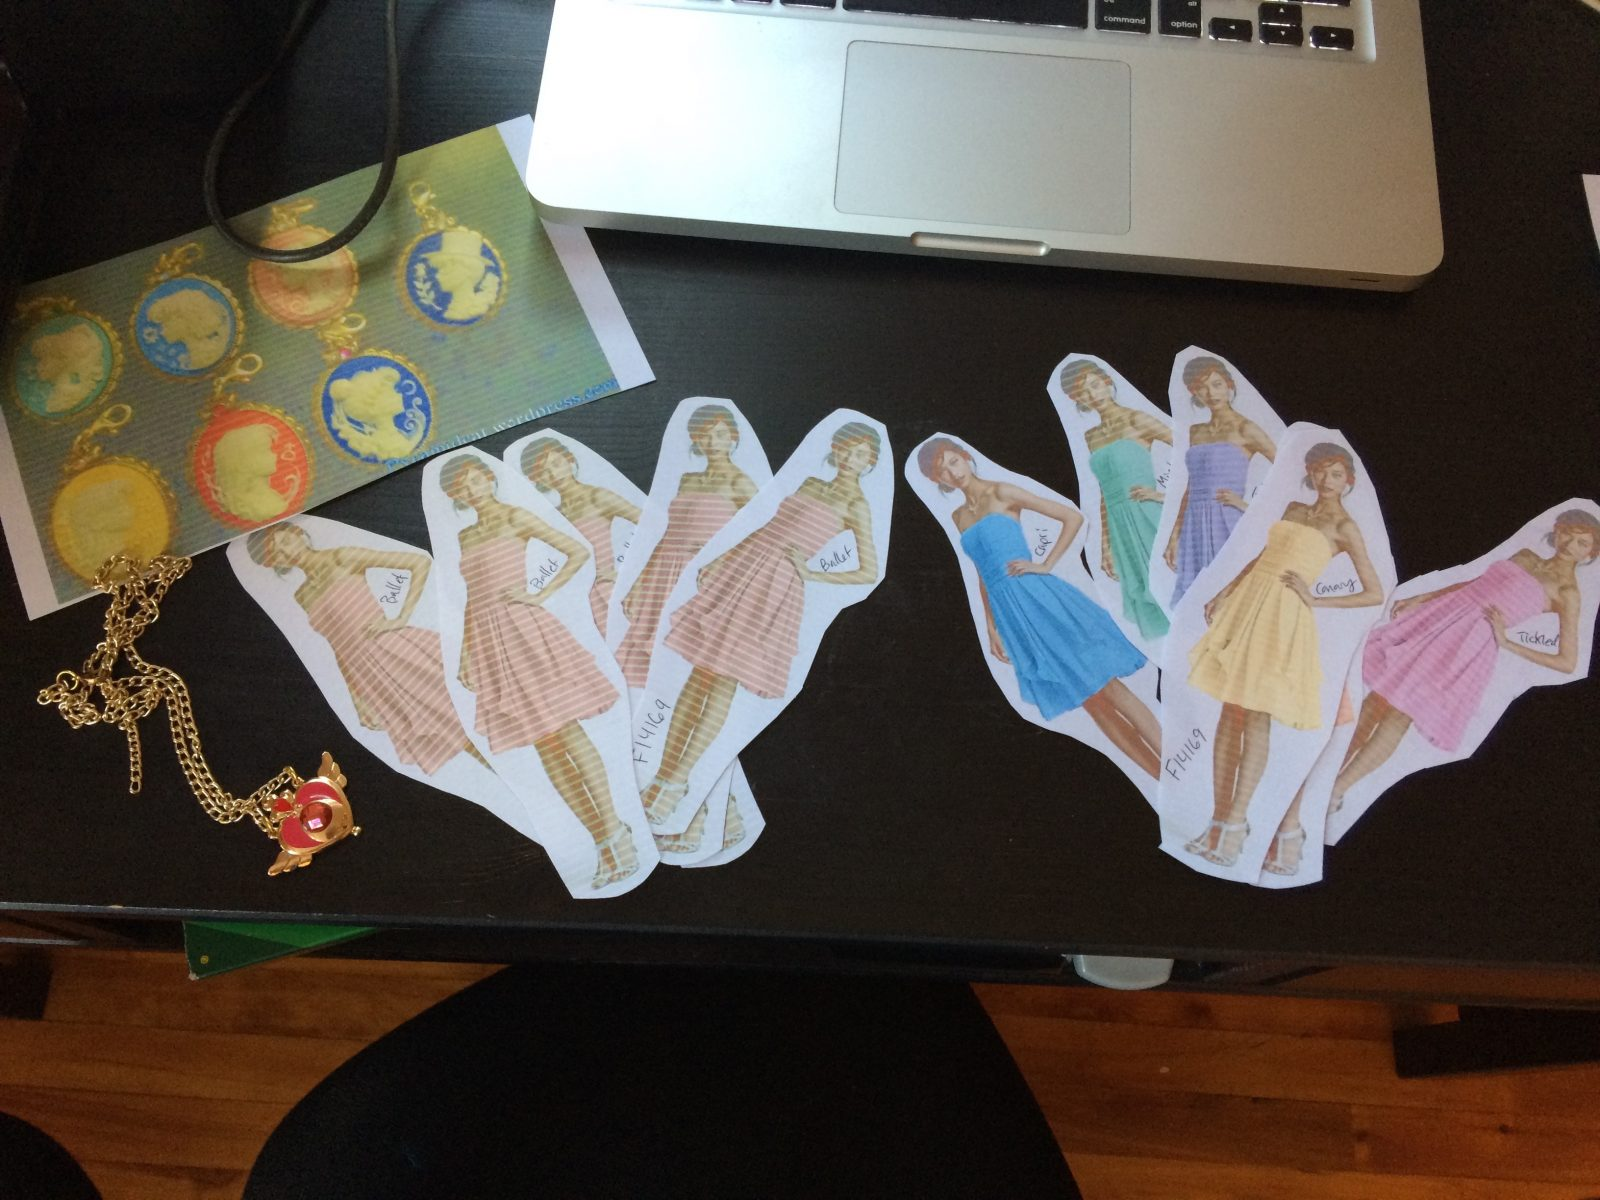 cutouts of models wearing various brideamaids dresses and colors with a photo of sailor moon cameos and crisis compact necklace